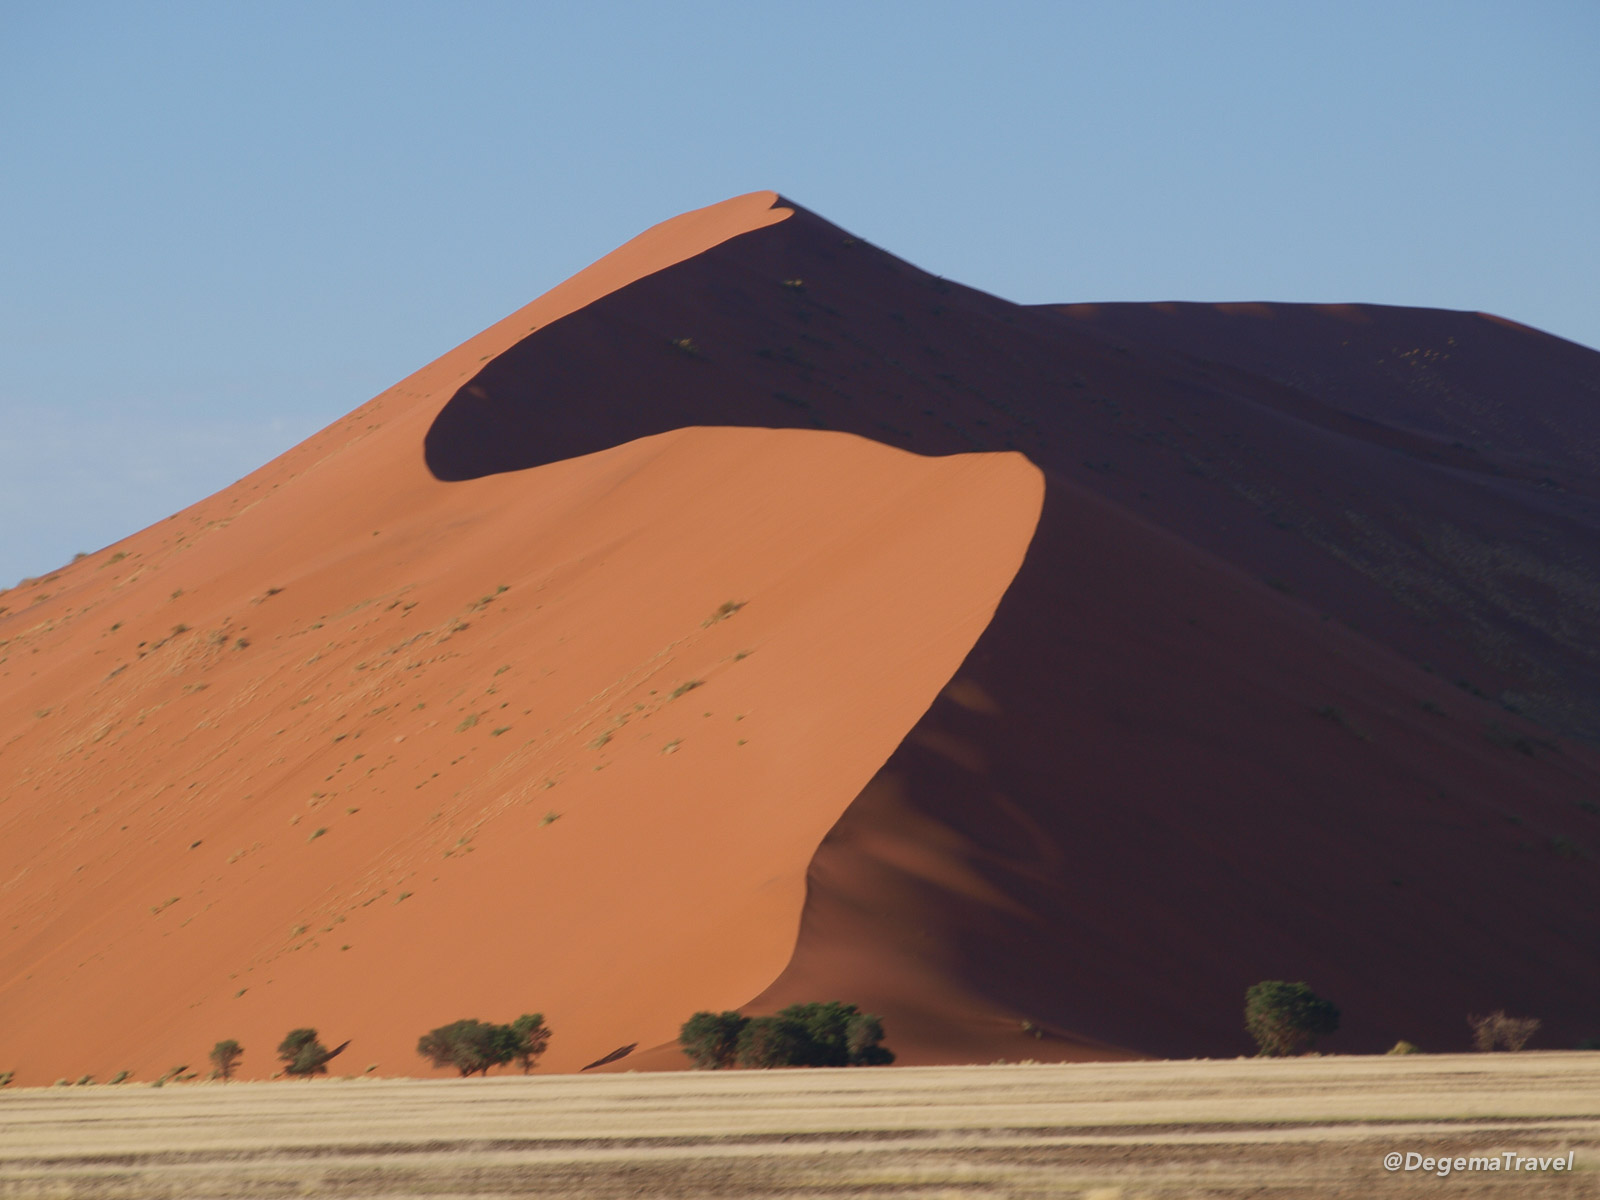 Dune 45 in Namibia